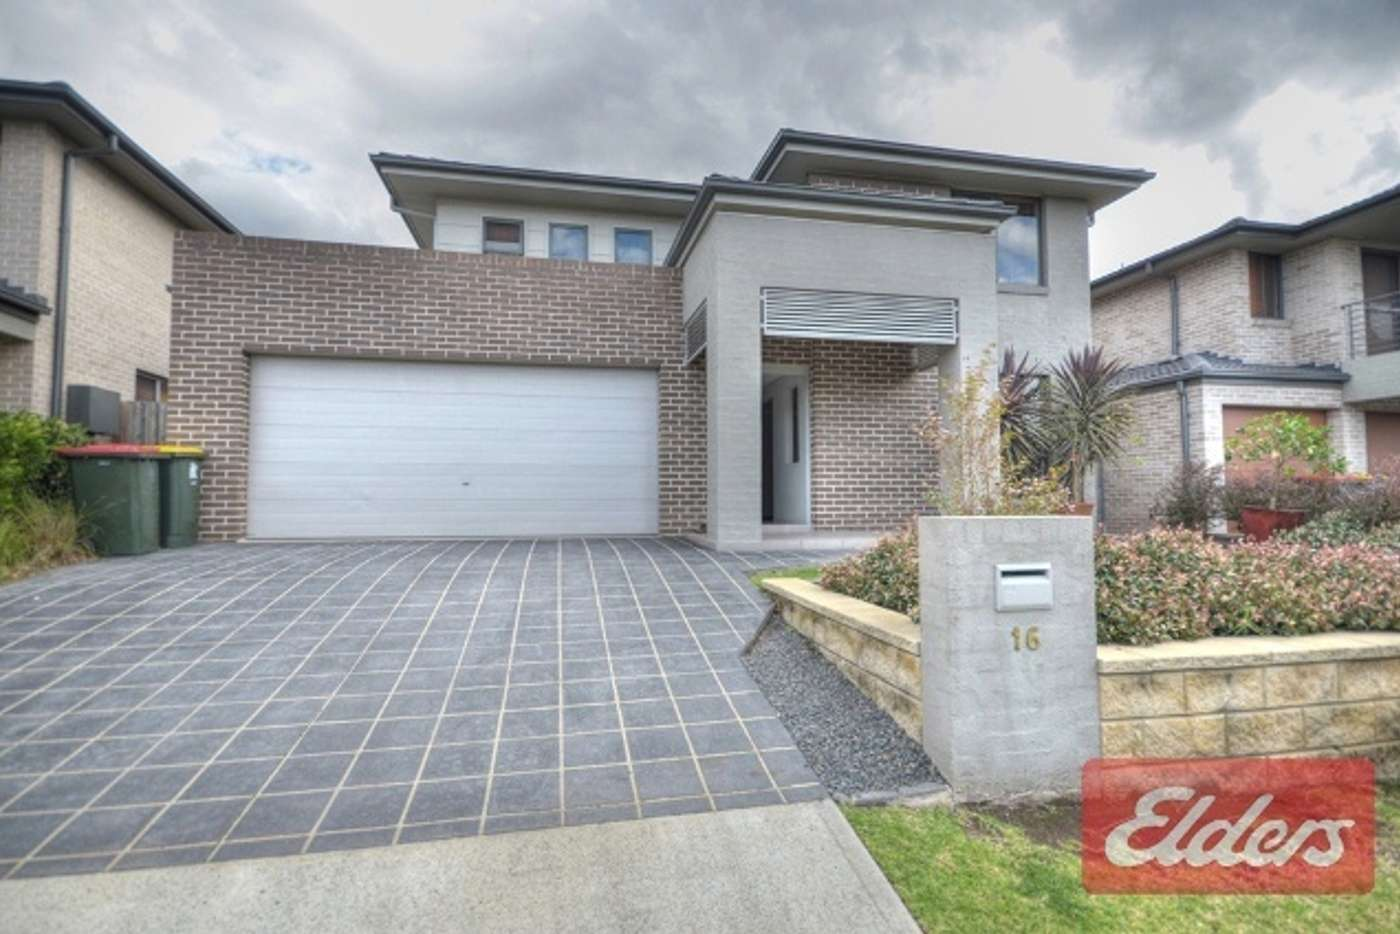 Main view of Homely house listing, 16 Adelong Parade, The Ponds NSW 2769